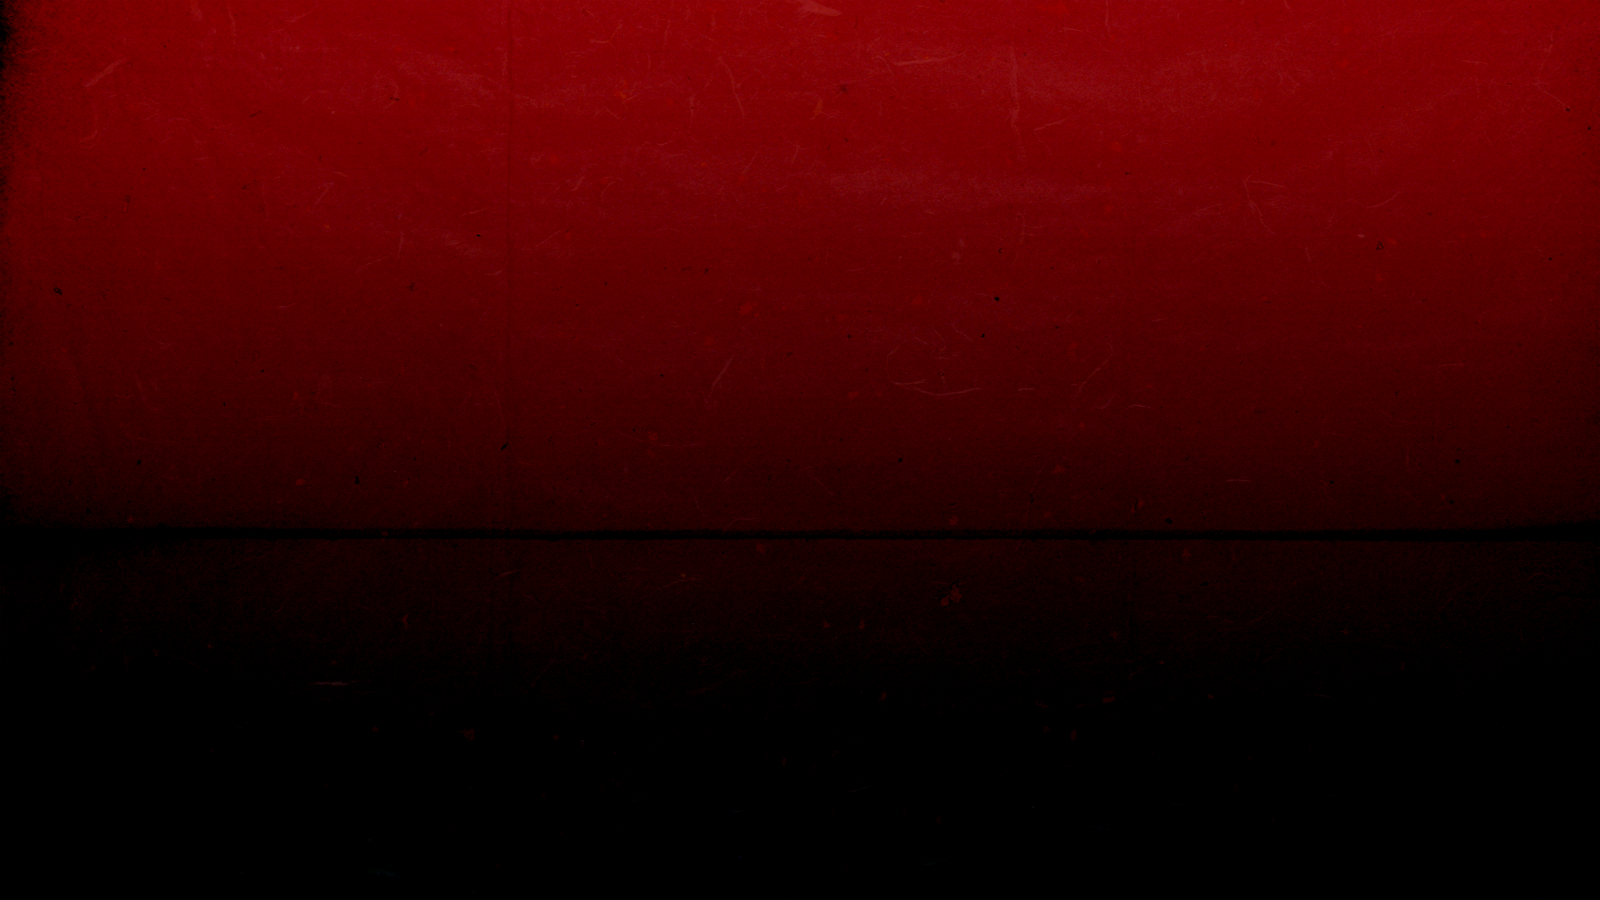 Hd wallpaper red and black - Red And Black Wallpaper Cool Wallpaper